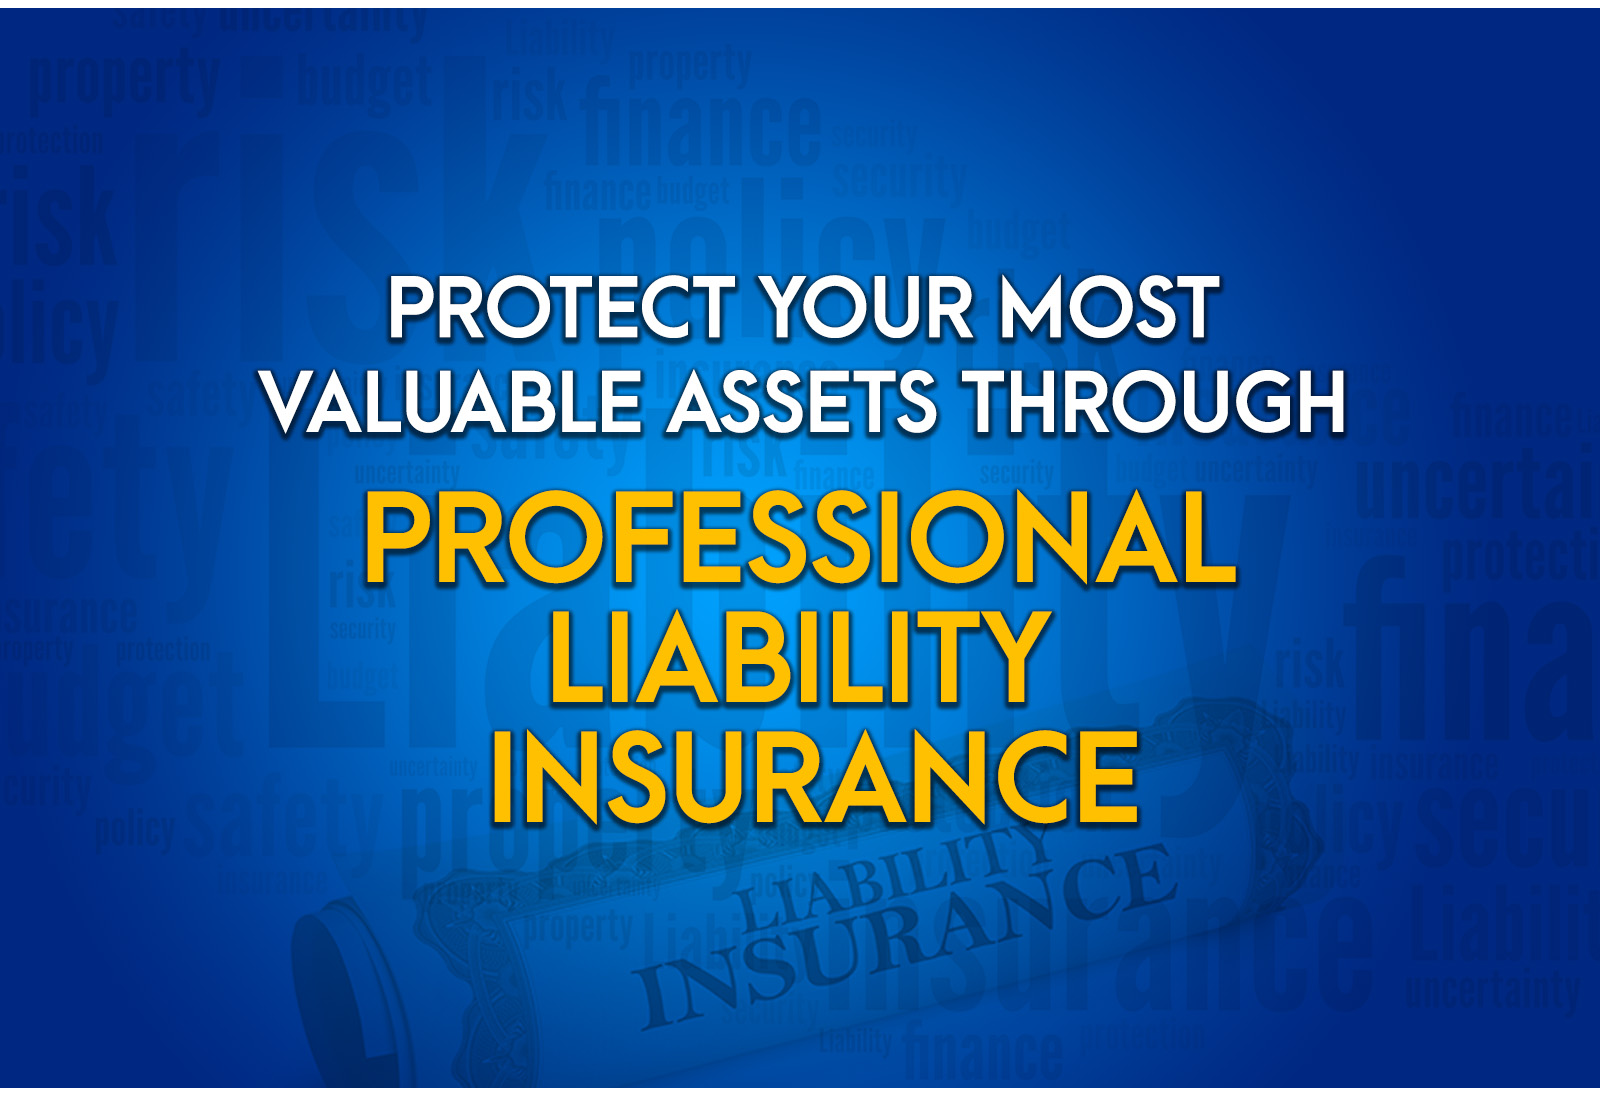 Protect Your Most Valuable Assets Through Professional Liability Insurance